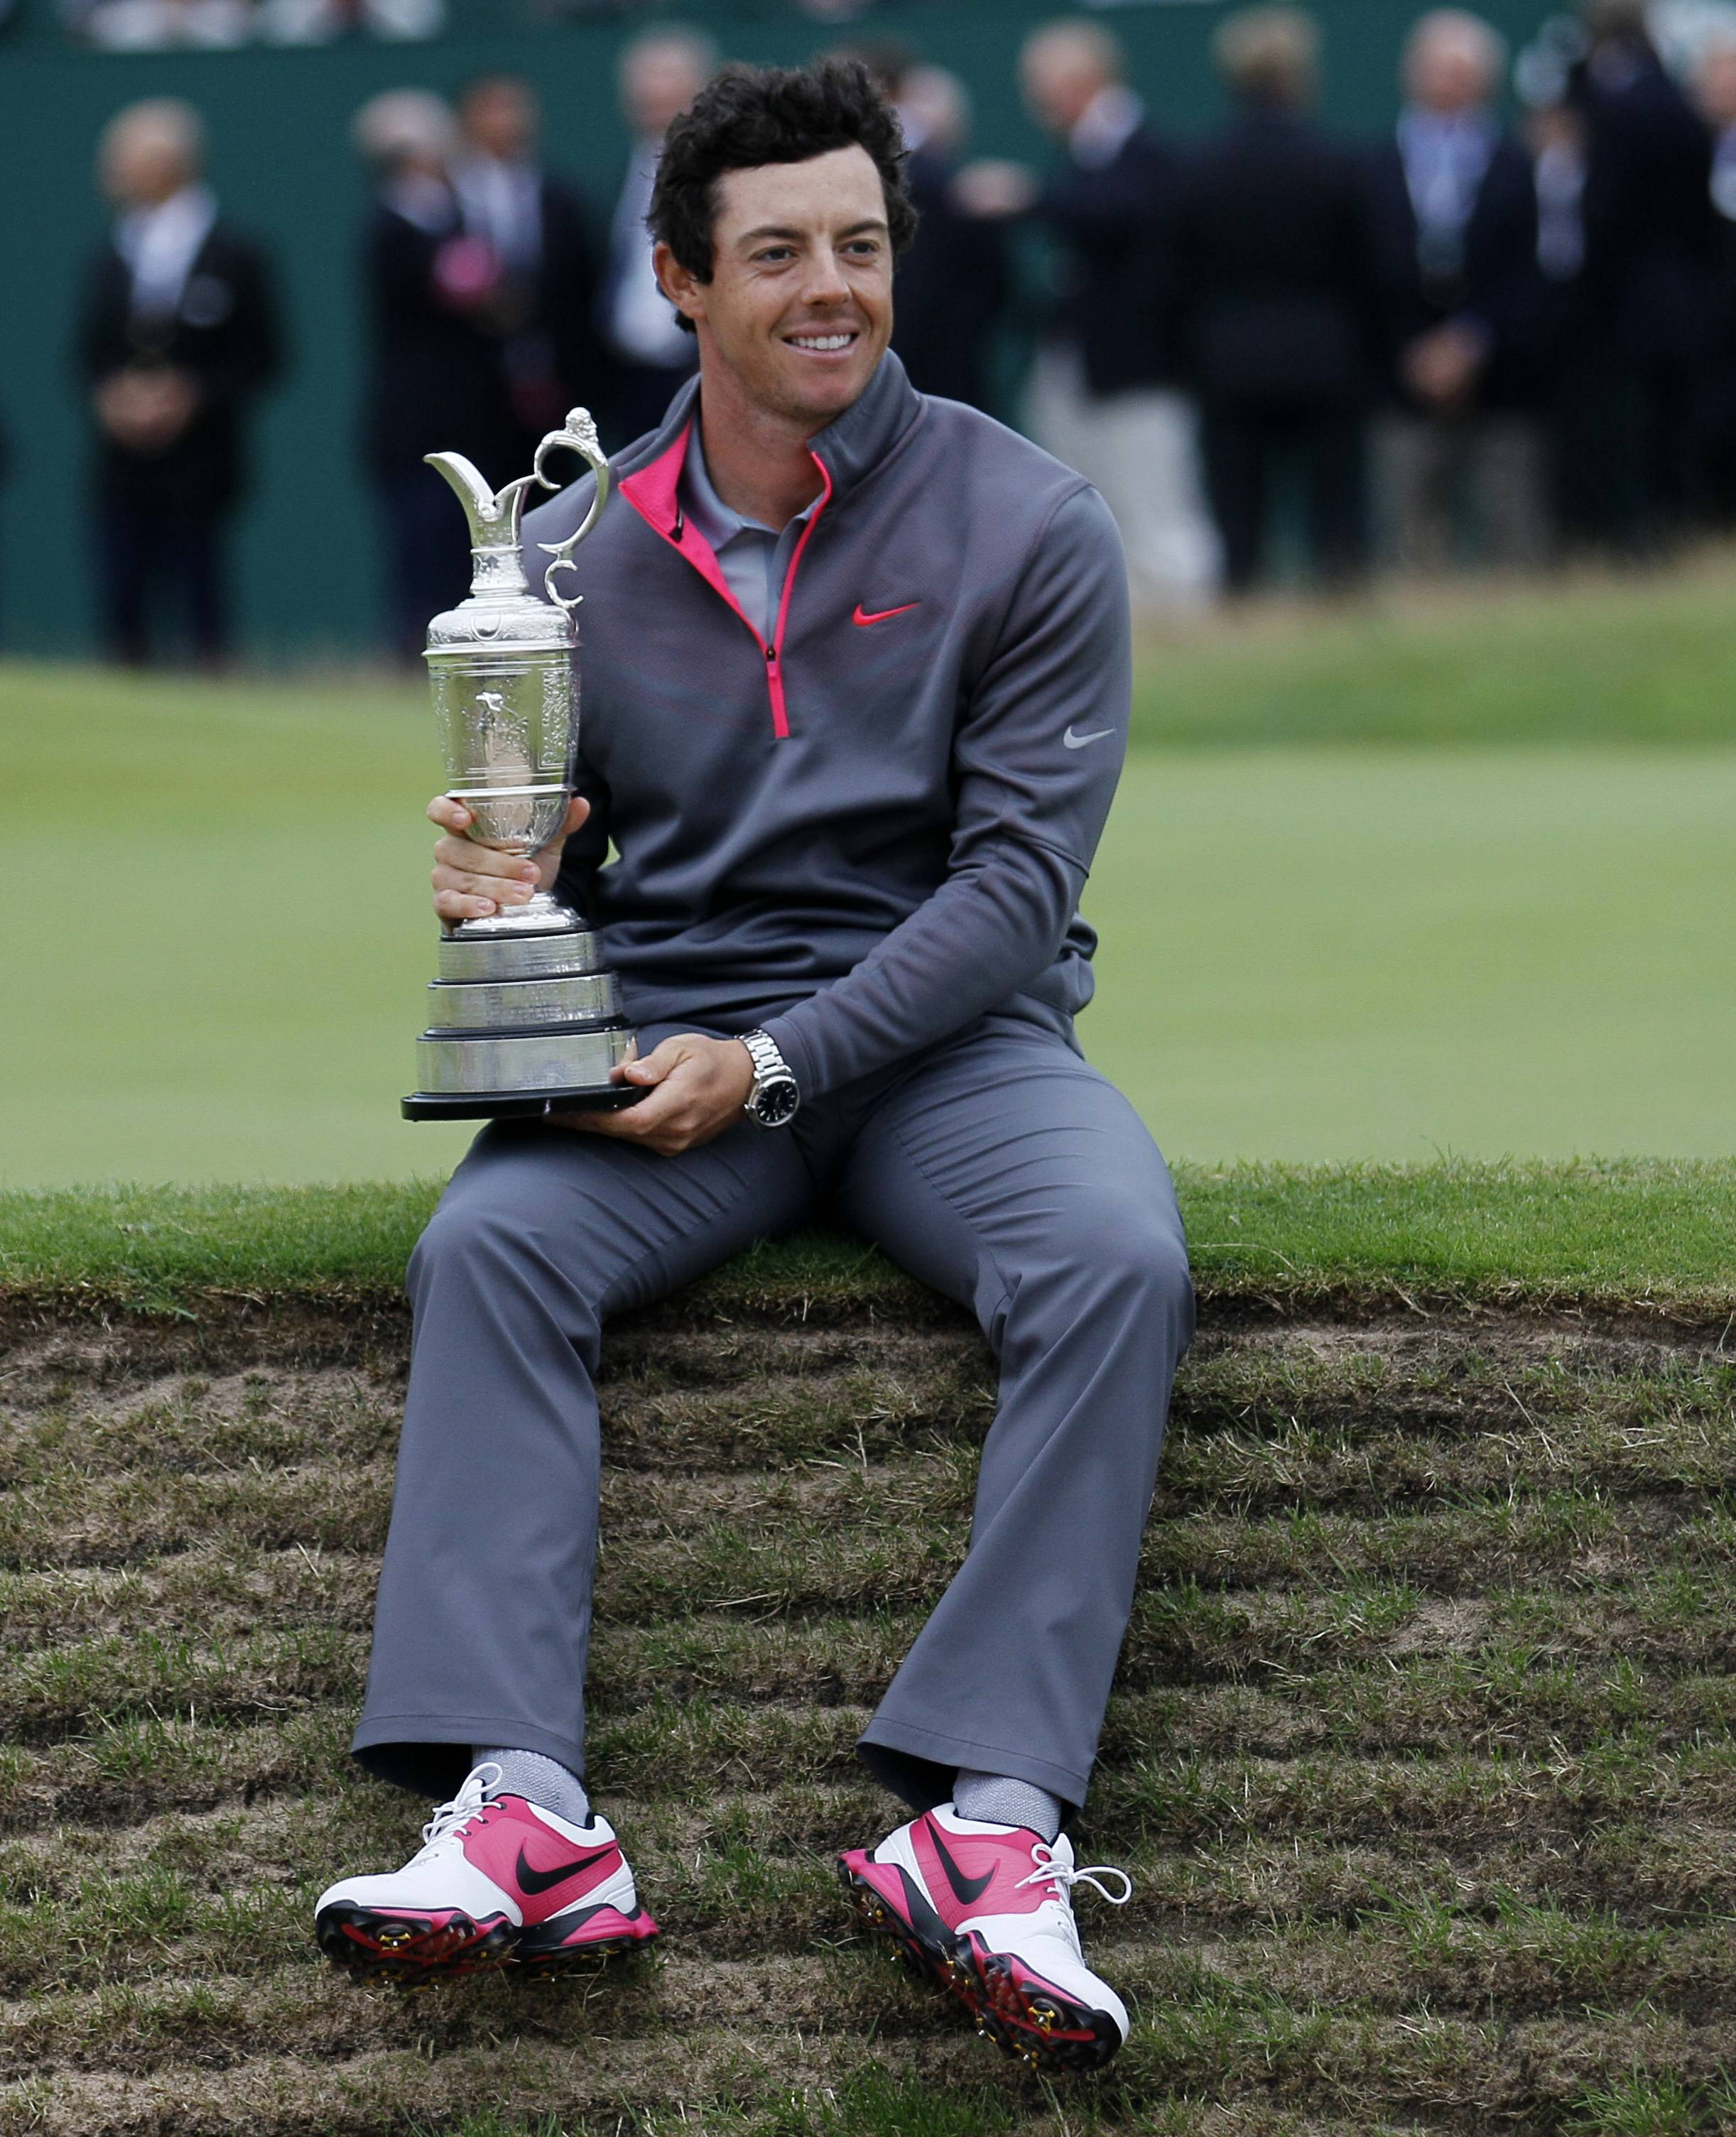 Rory McIlroy holds the claret jug after finishing his wire-to-wire British Open victory, his third major in the career grand slam. McIlroy already is thinking about next year's Masters.